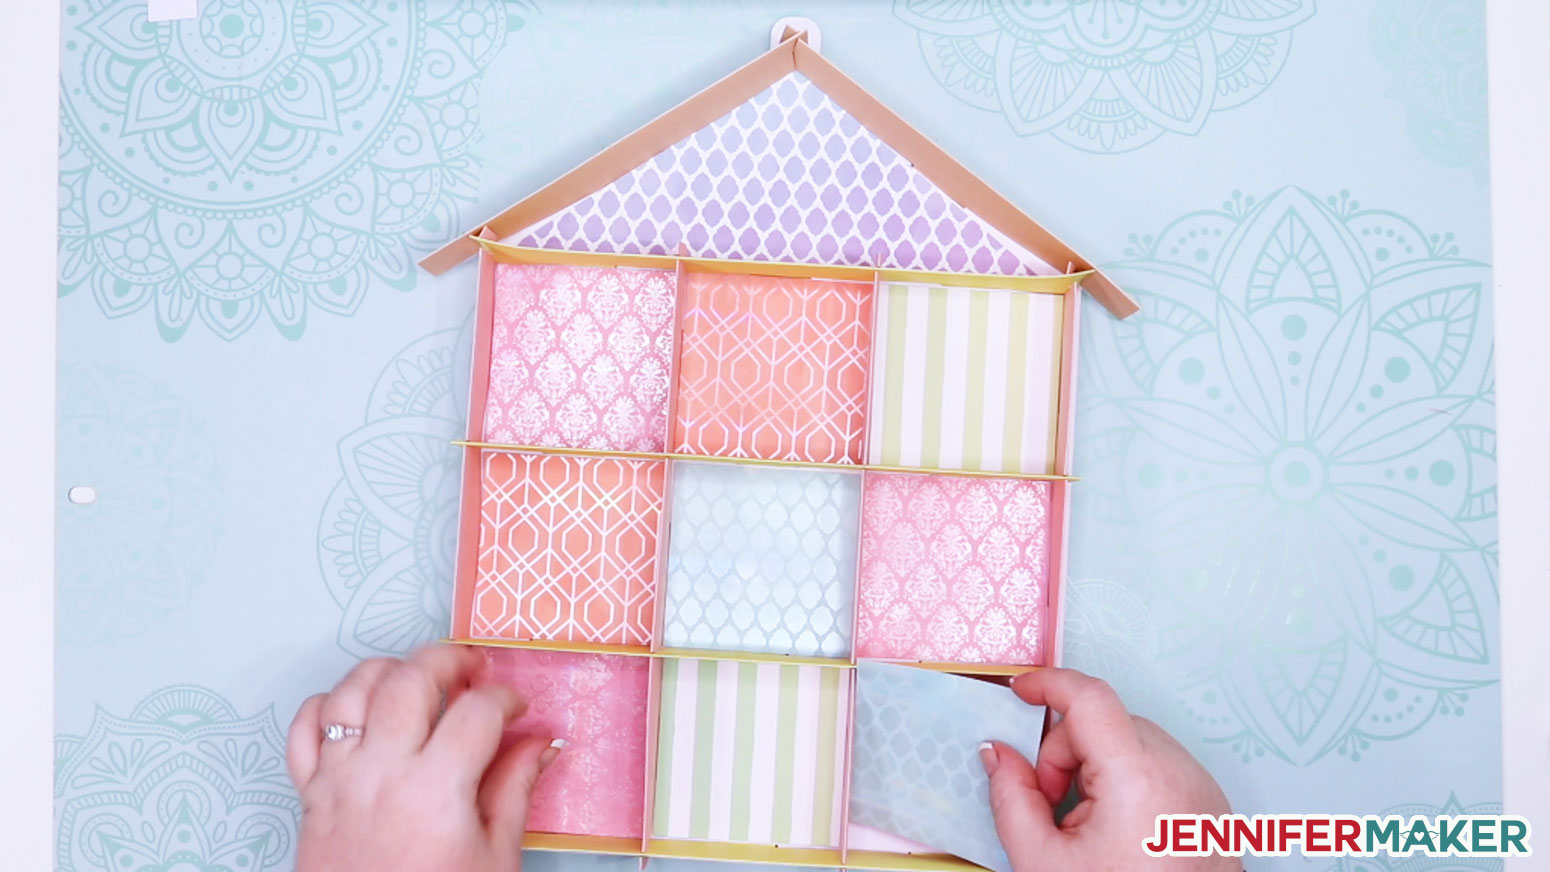 Placing the wallpaper in each room of the house-shaped display case